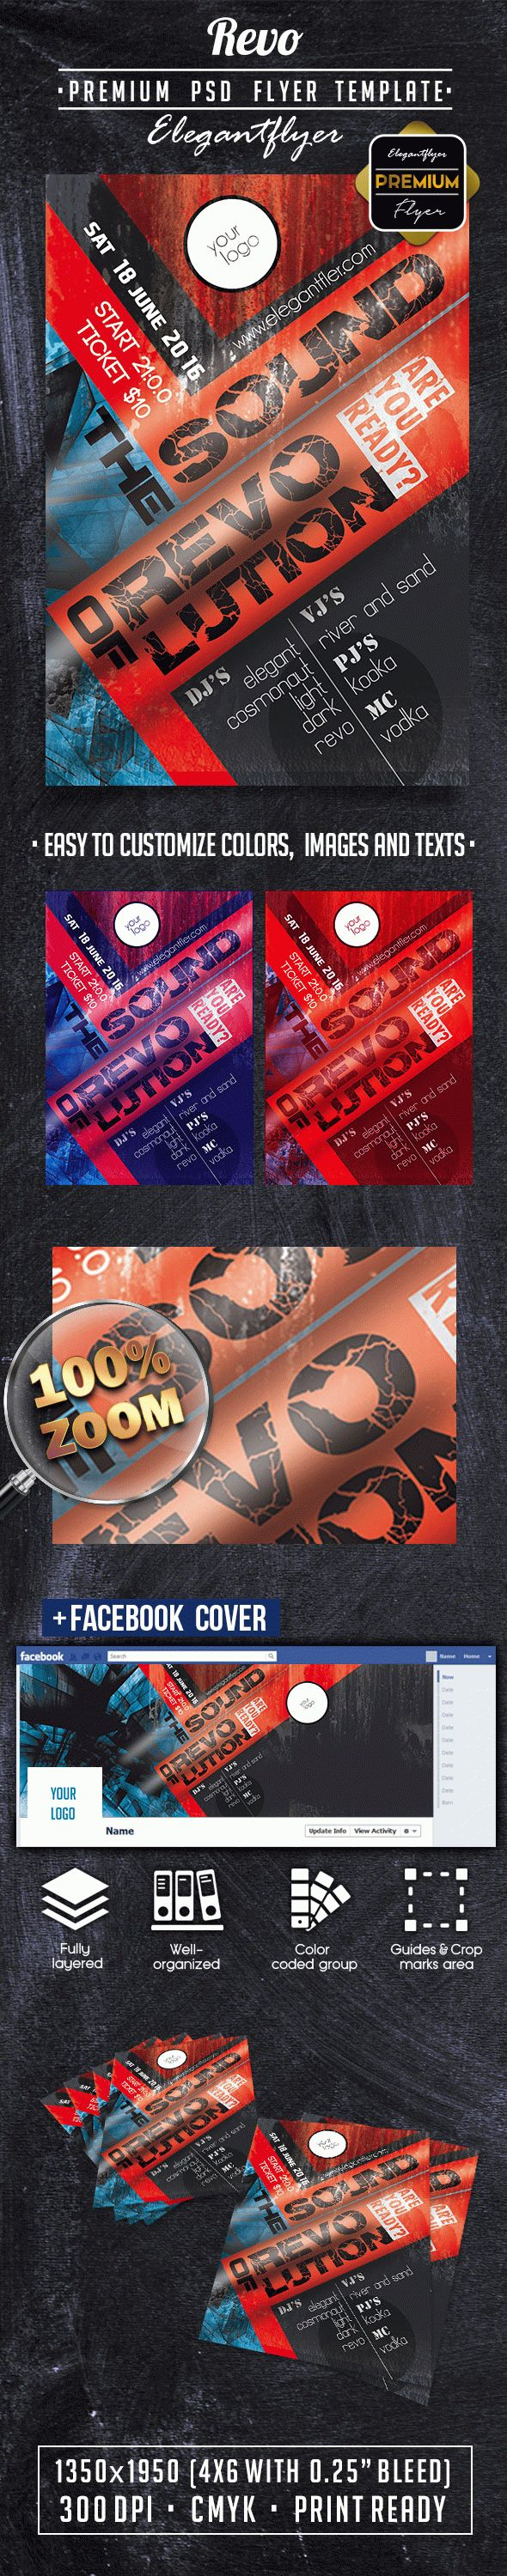 Revo PREMIUM Flyer PSD Template + Facebook Cover